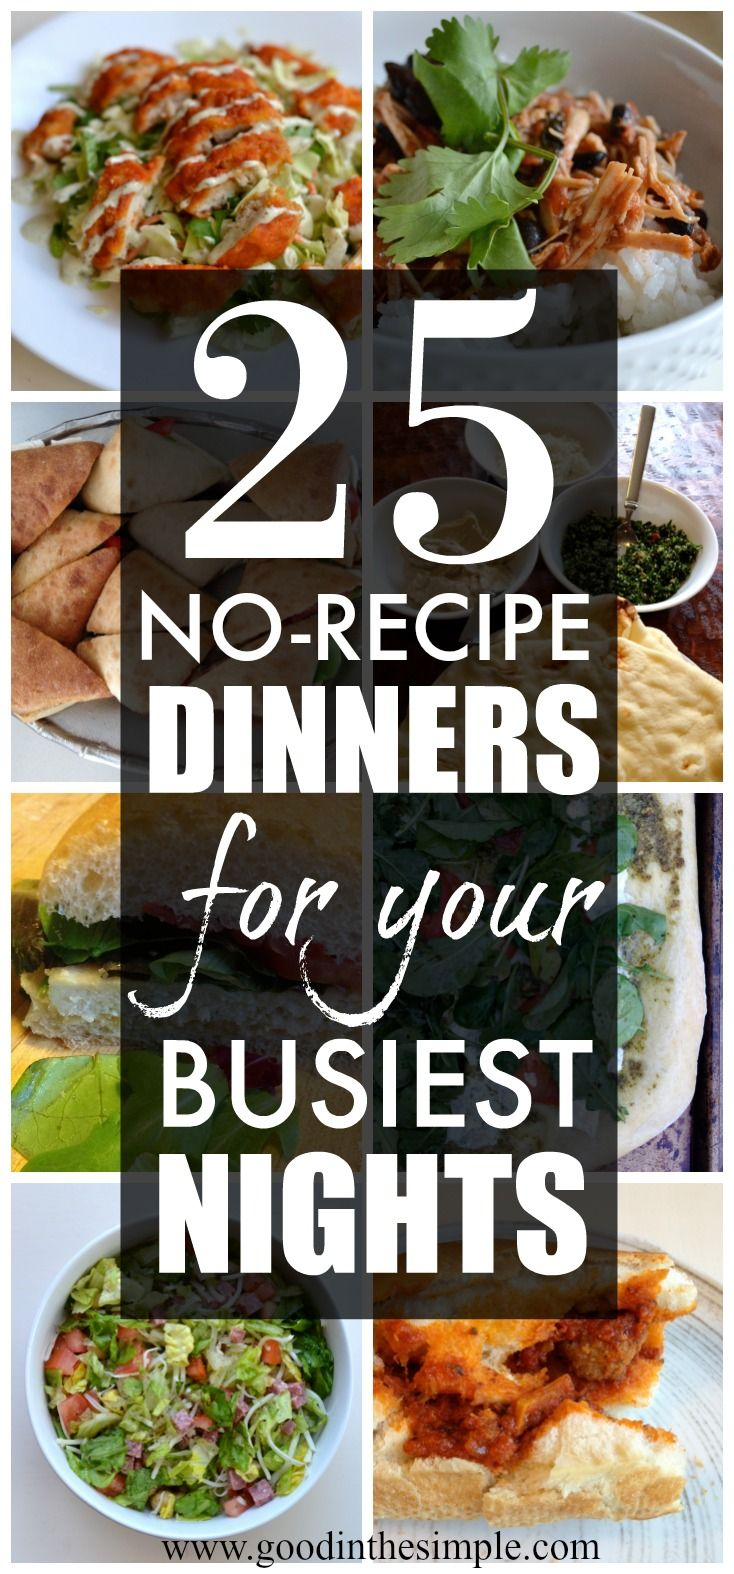 These 25 meals are delicious, nutritious, simple, and don't require any recipes! Perfect for busy nights when you want to eat at home, but don't have the time to plan a complex meal.